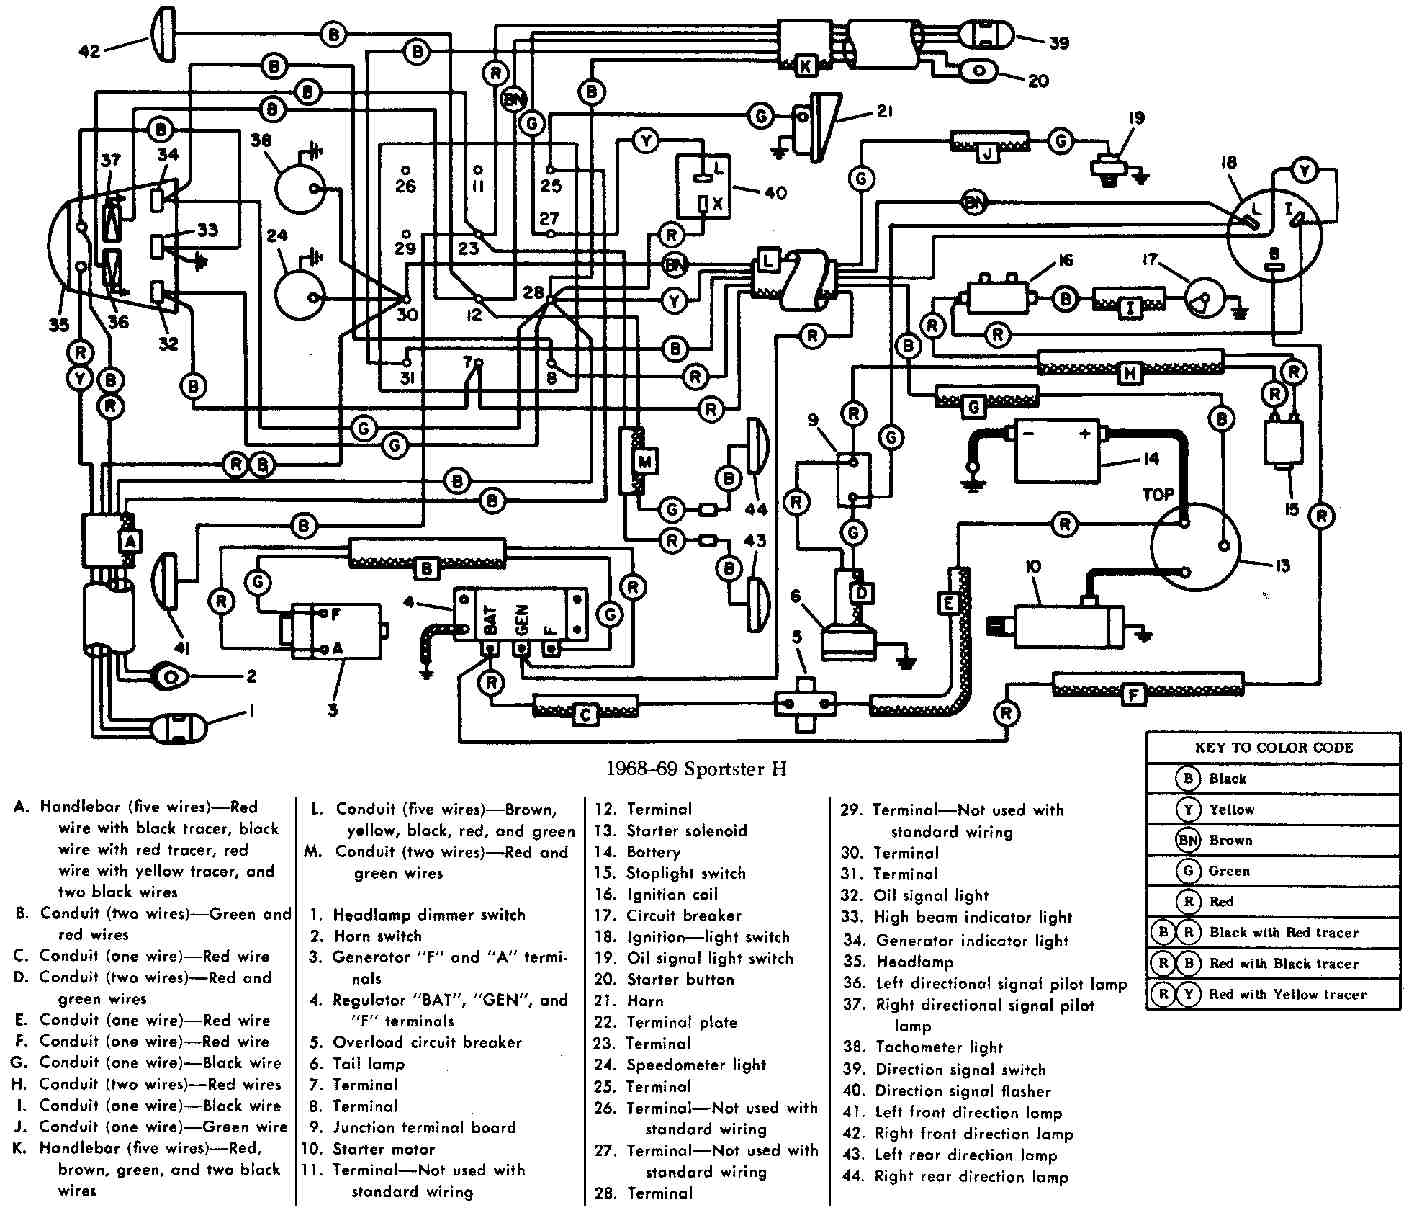 flh wiring related keywords suggestions flh wiring 1968 1969 electrical wiring diagram all about diagrams